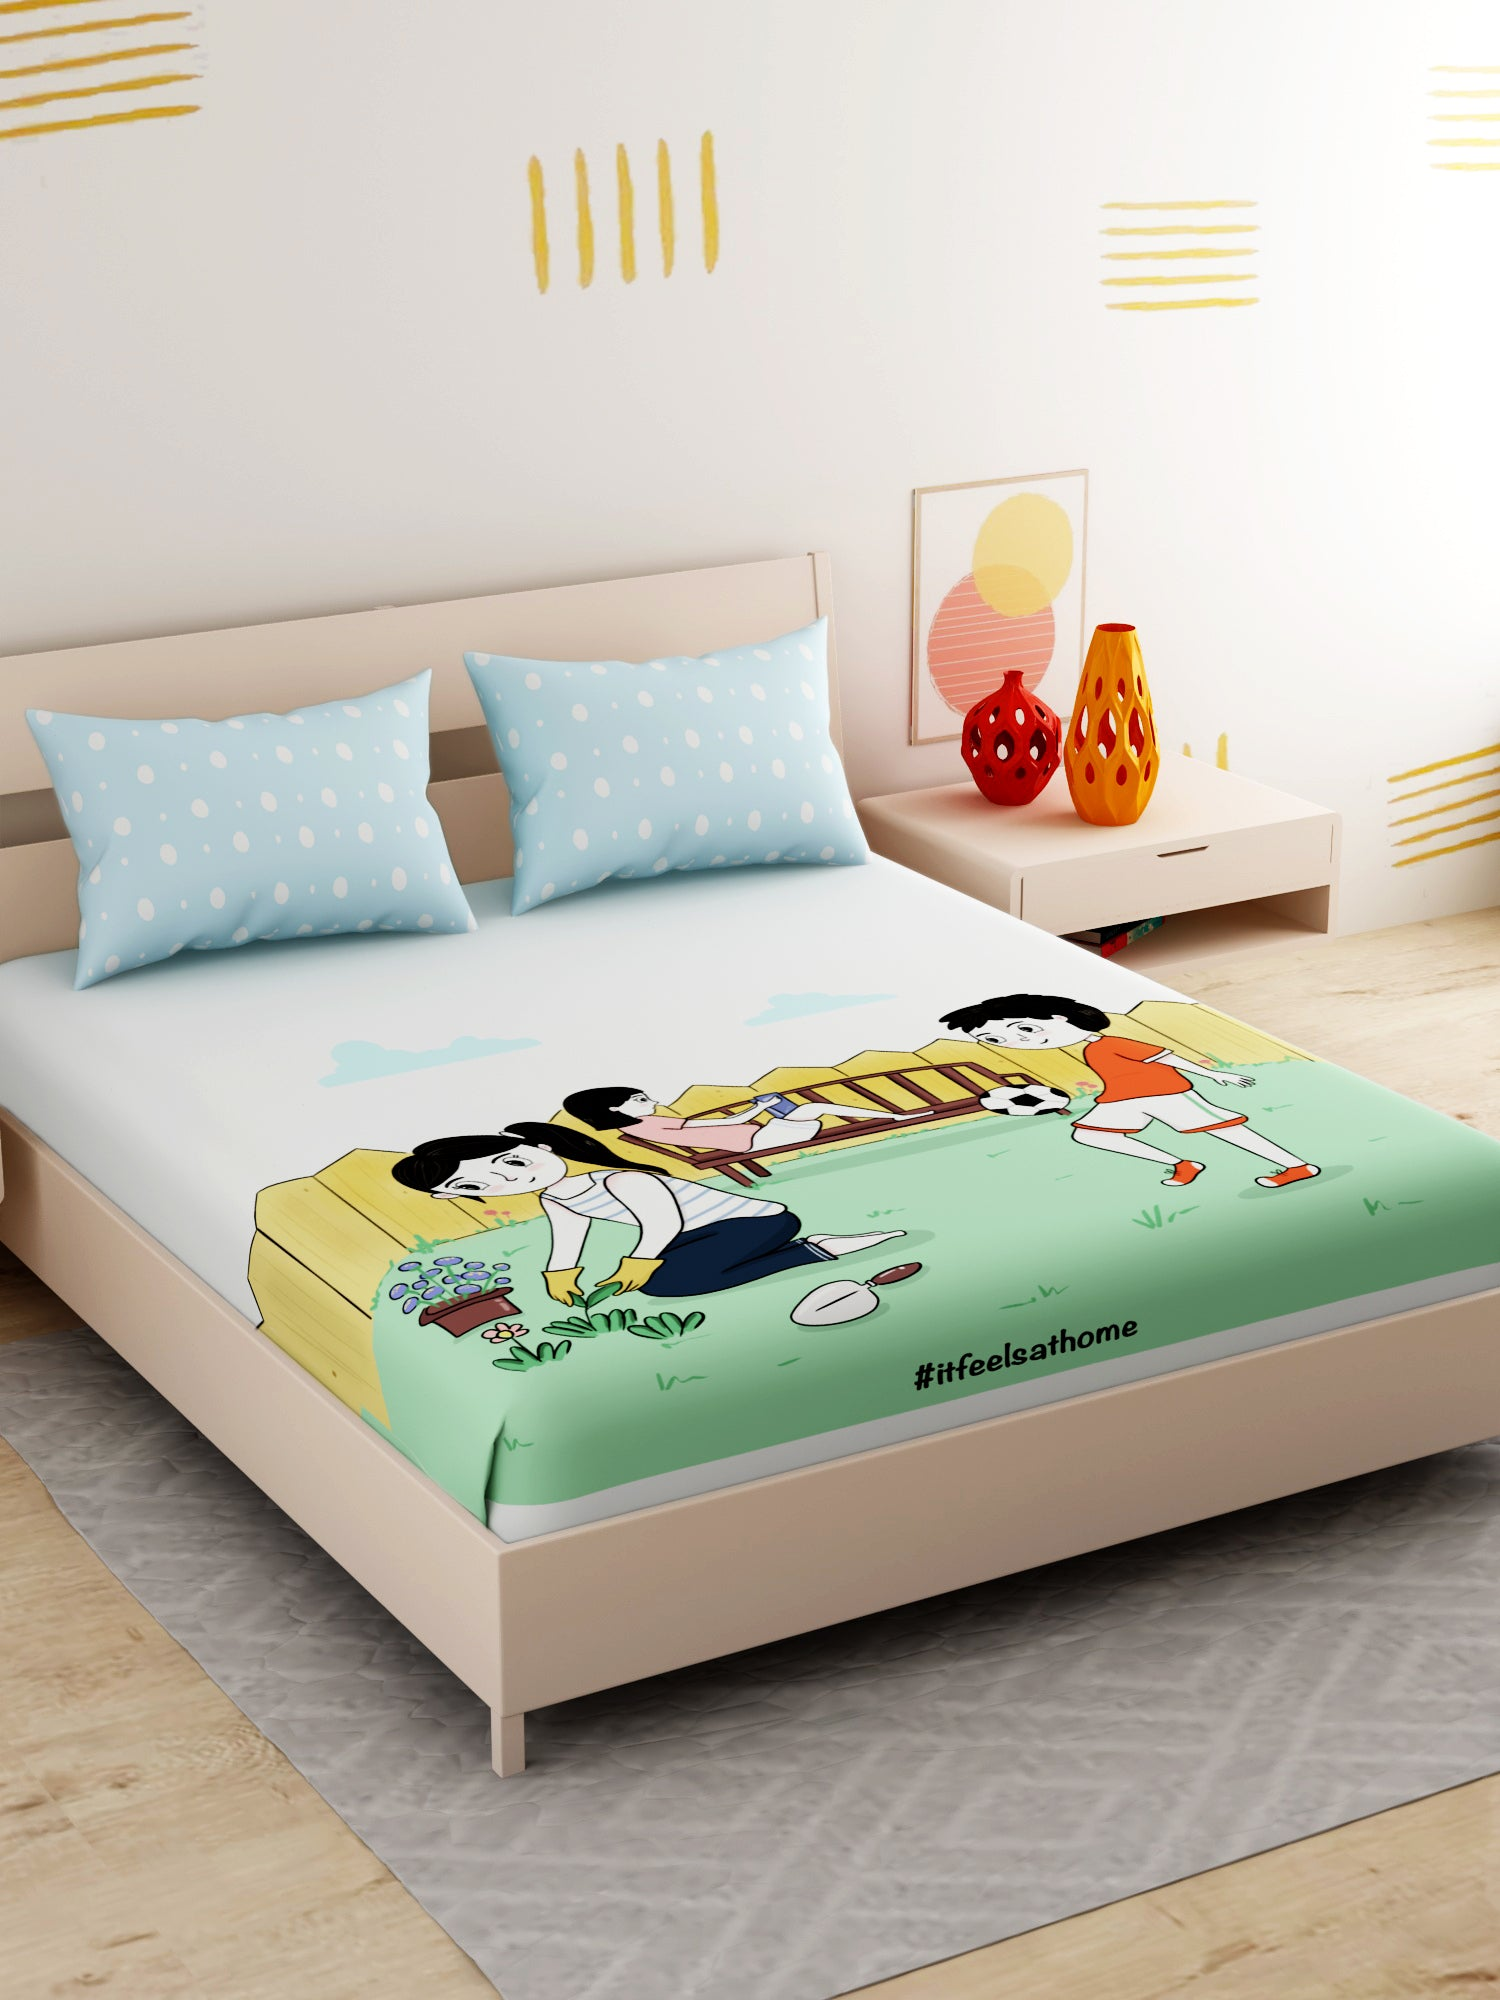 It Feels At Home King Size Double Bedsheet with 2 Pillow Cover